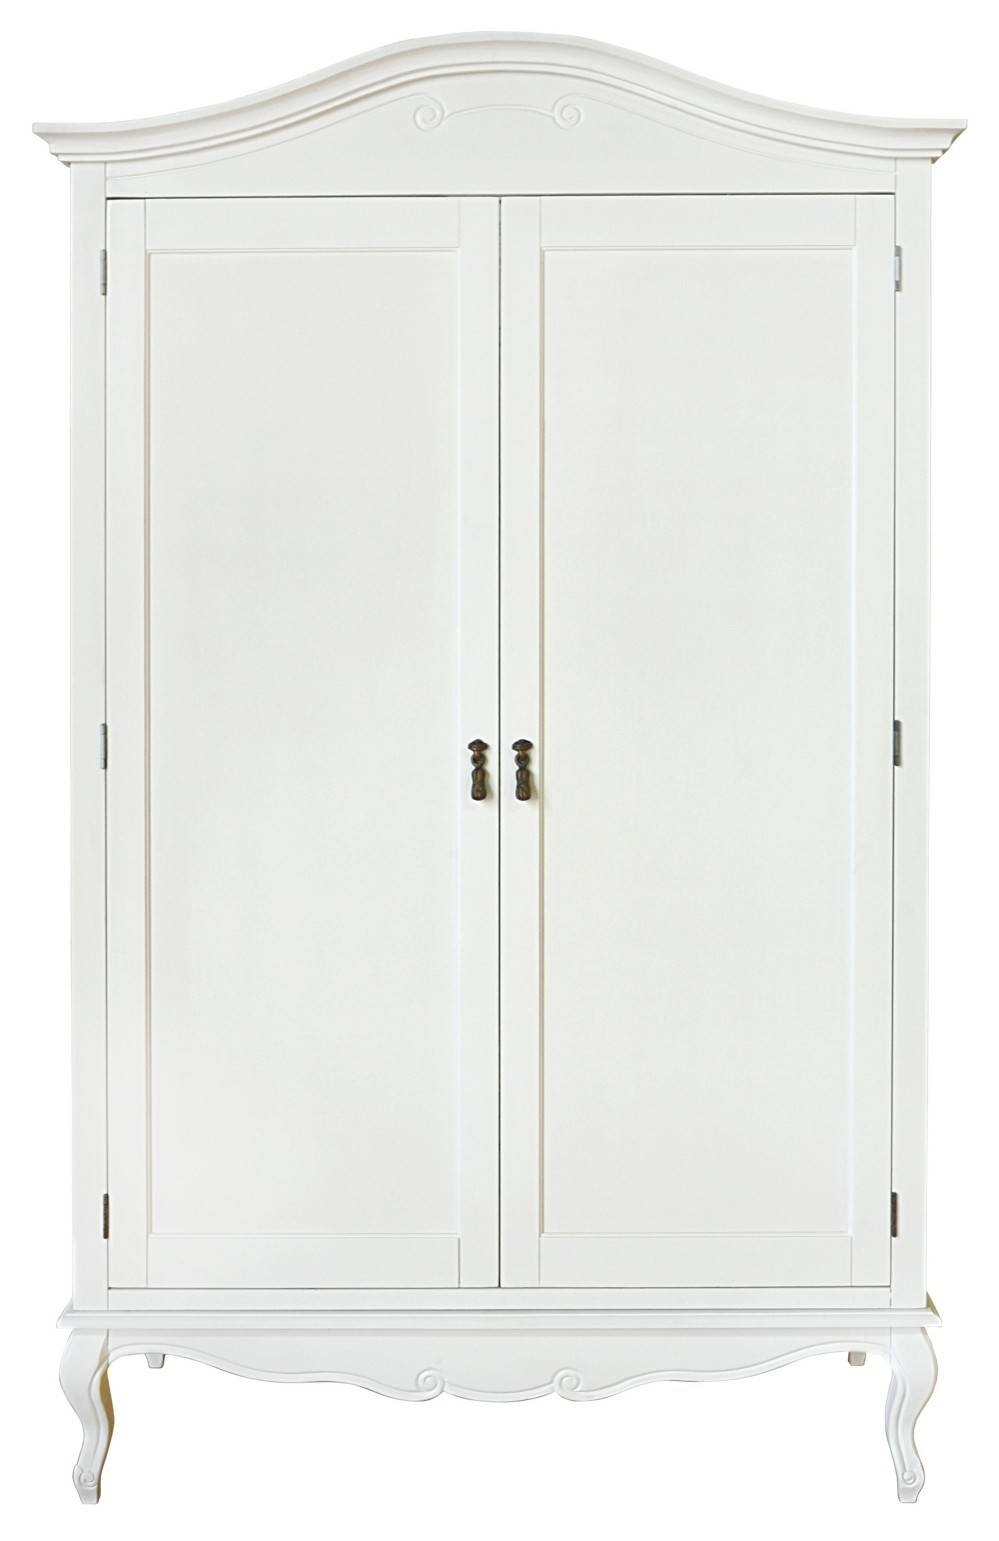 Wardrobes | Bedroom Furniture Direct intended for Double Rail Wardrobes (Image 26 of 30)